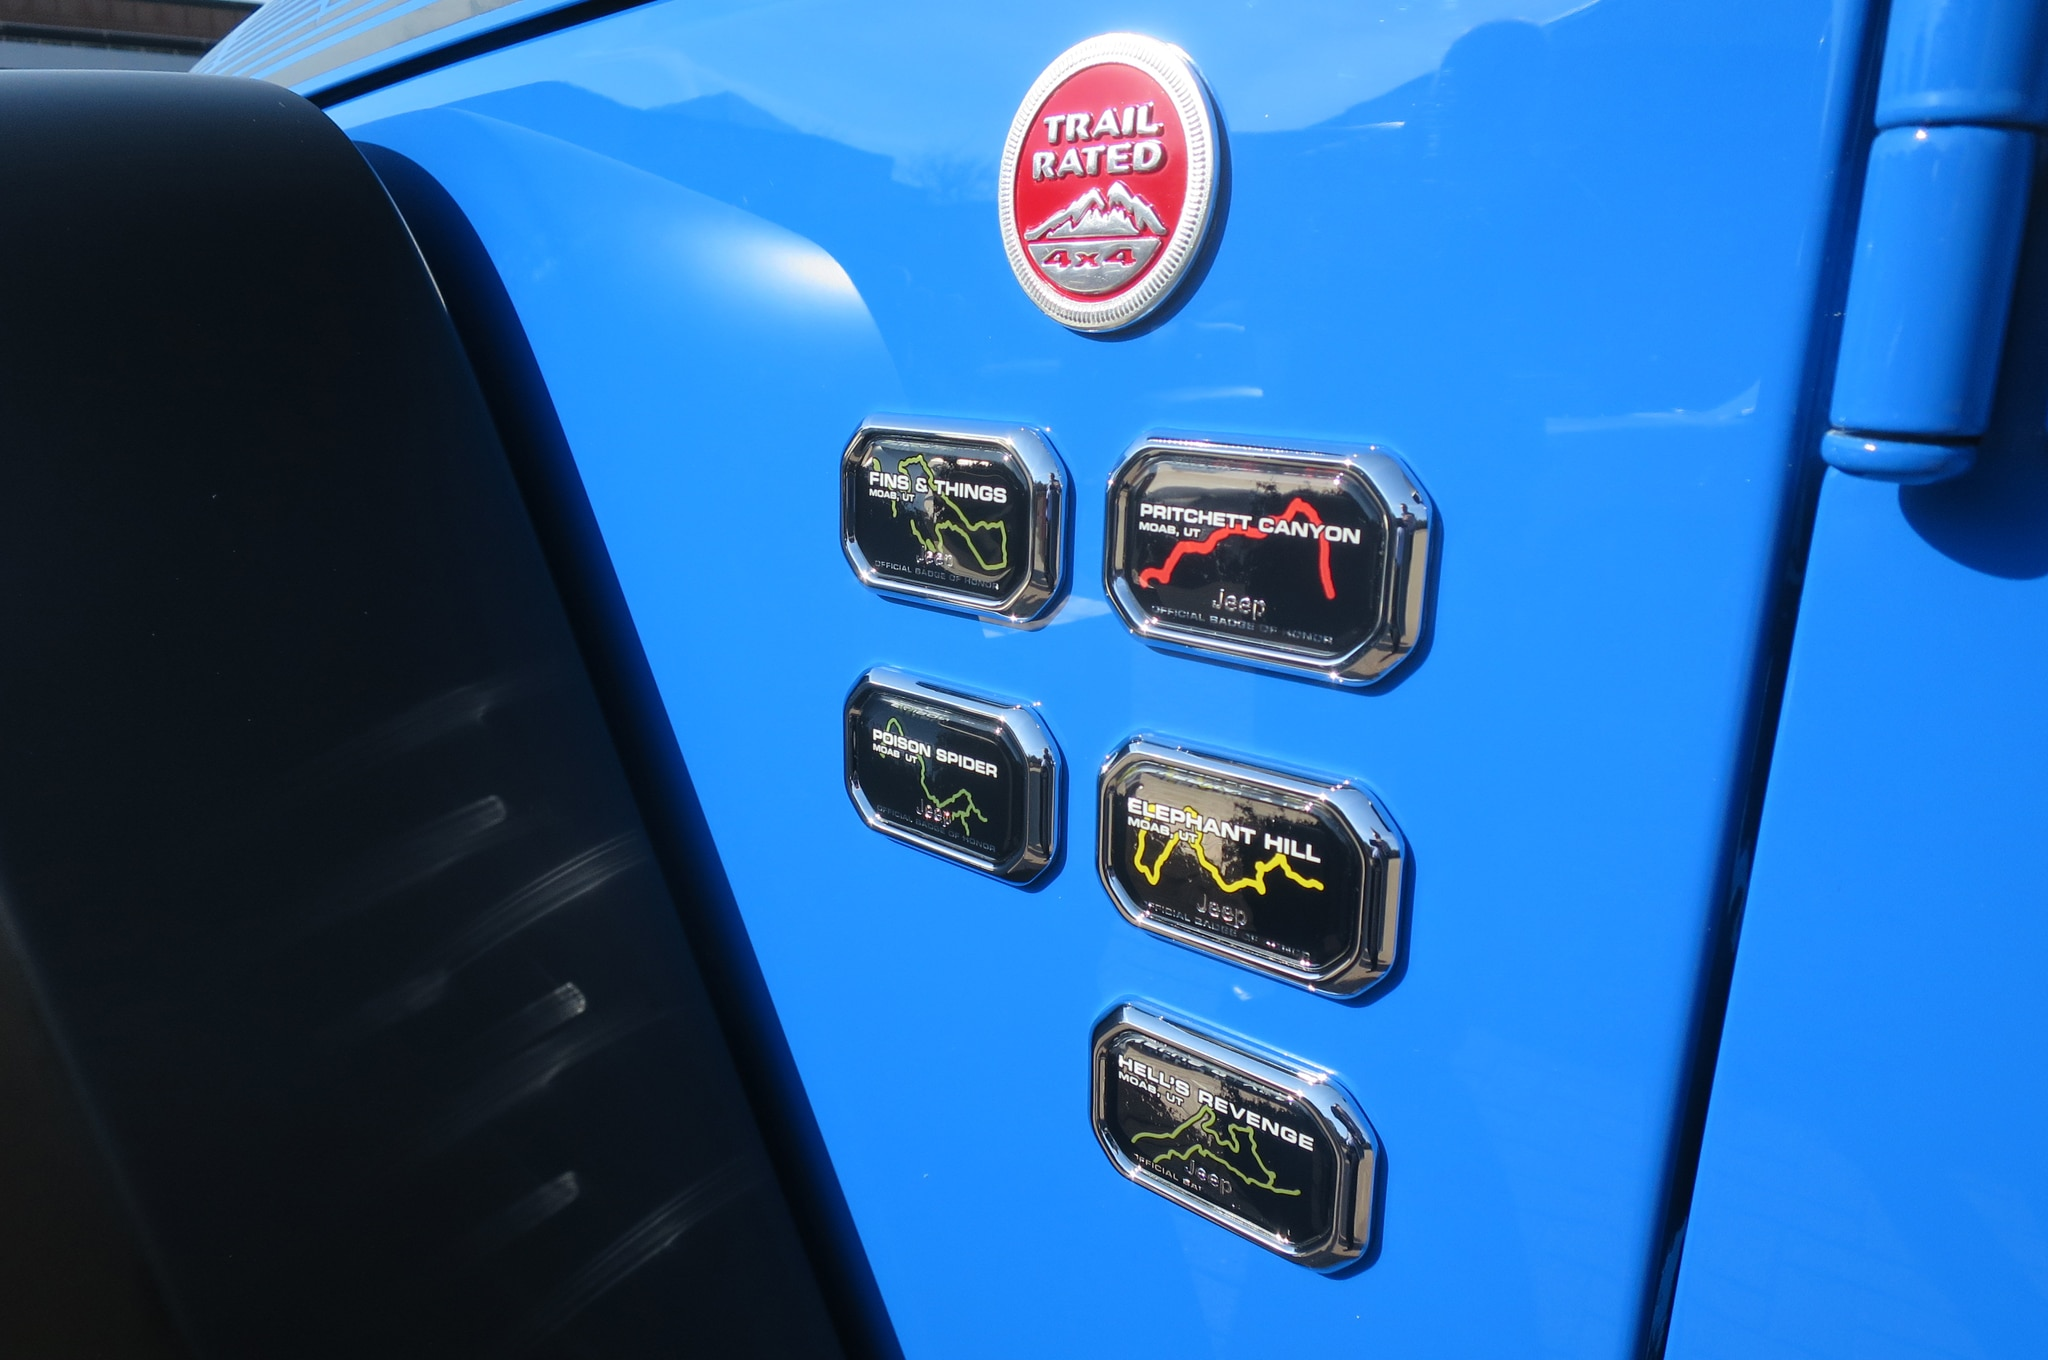 Jeep Wrangler Maximum Performance Concept badges